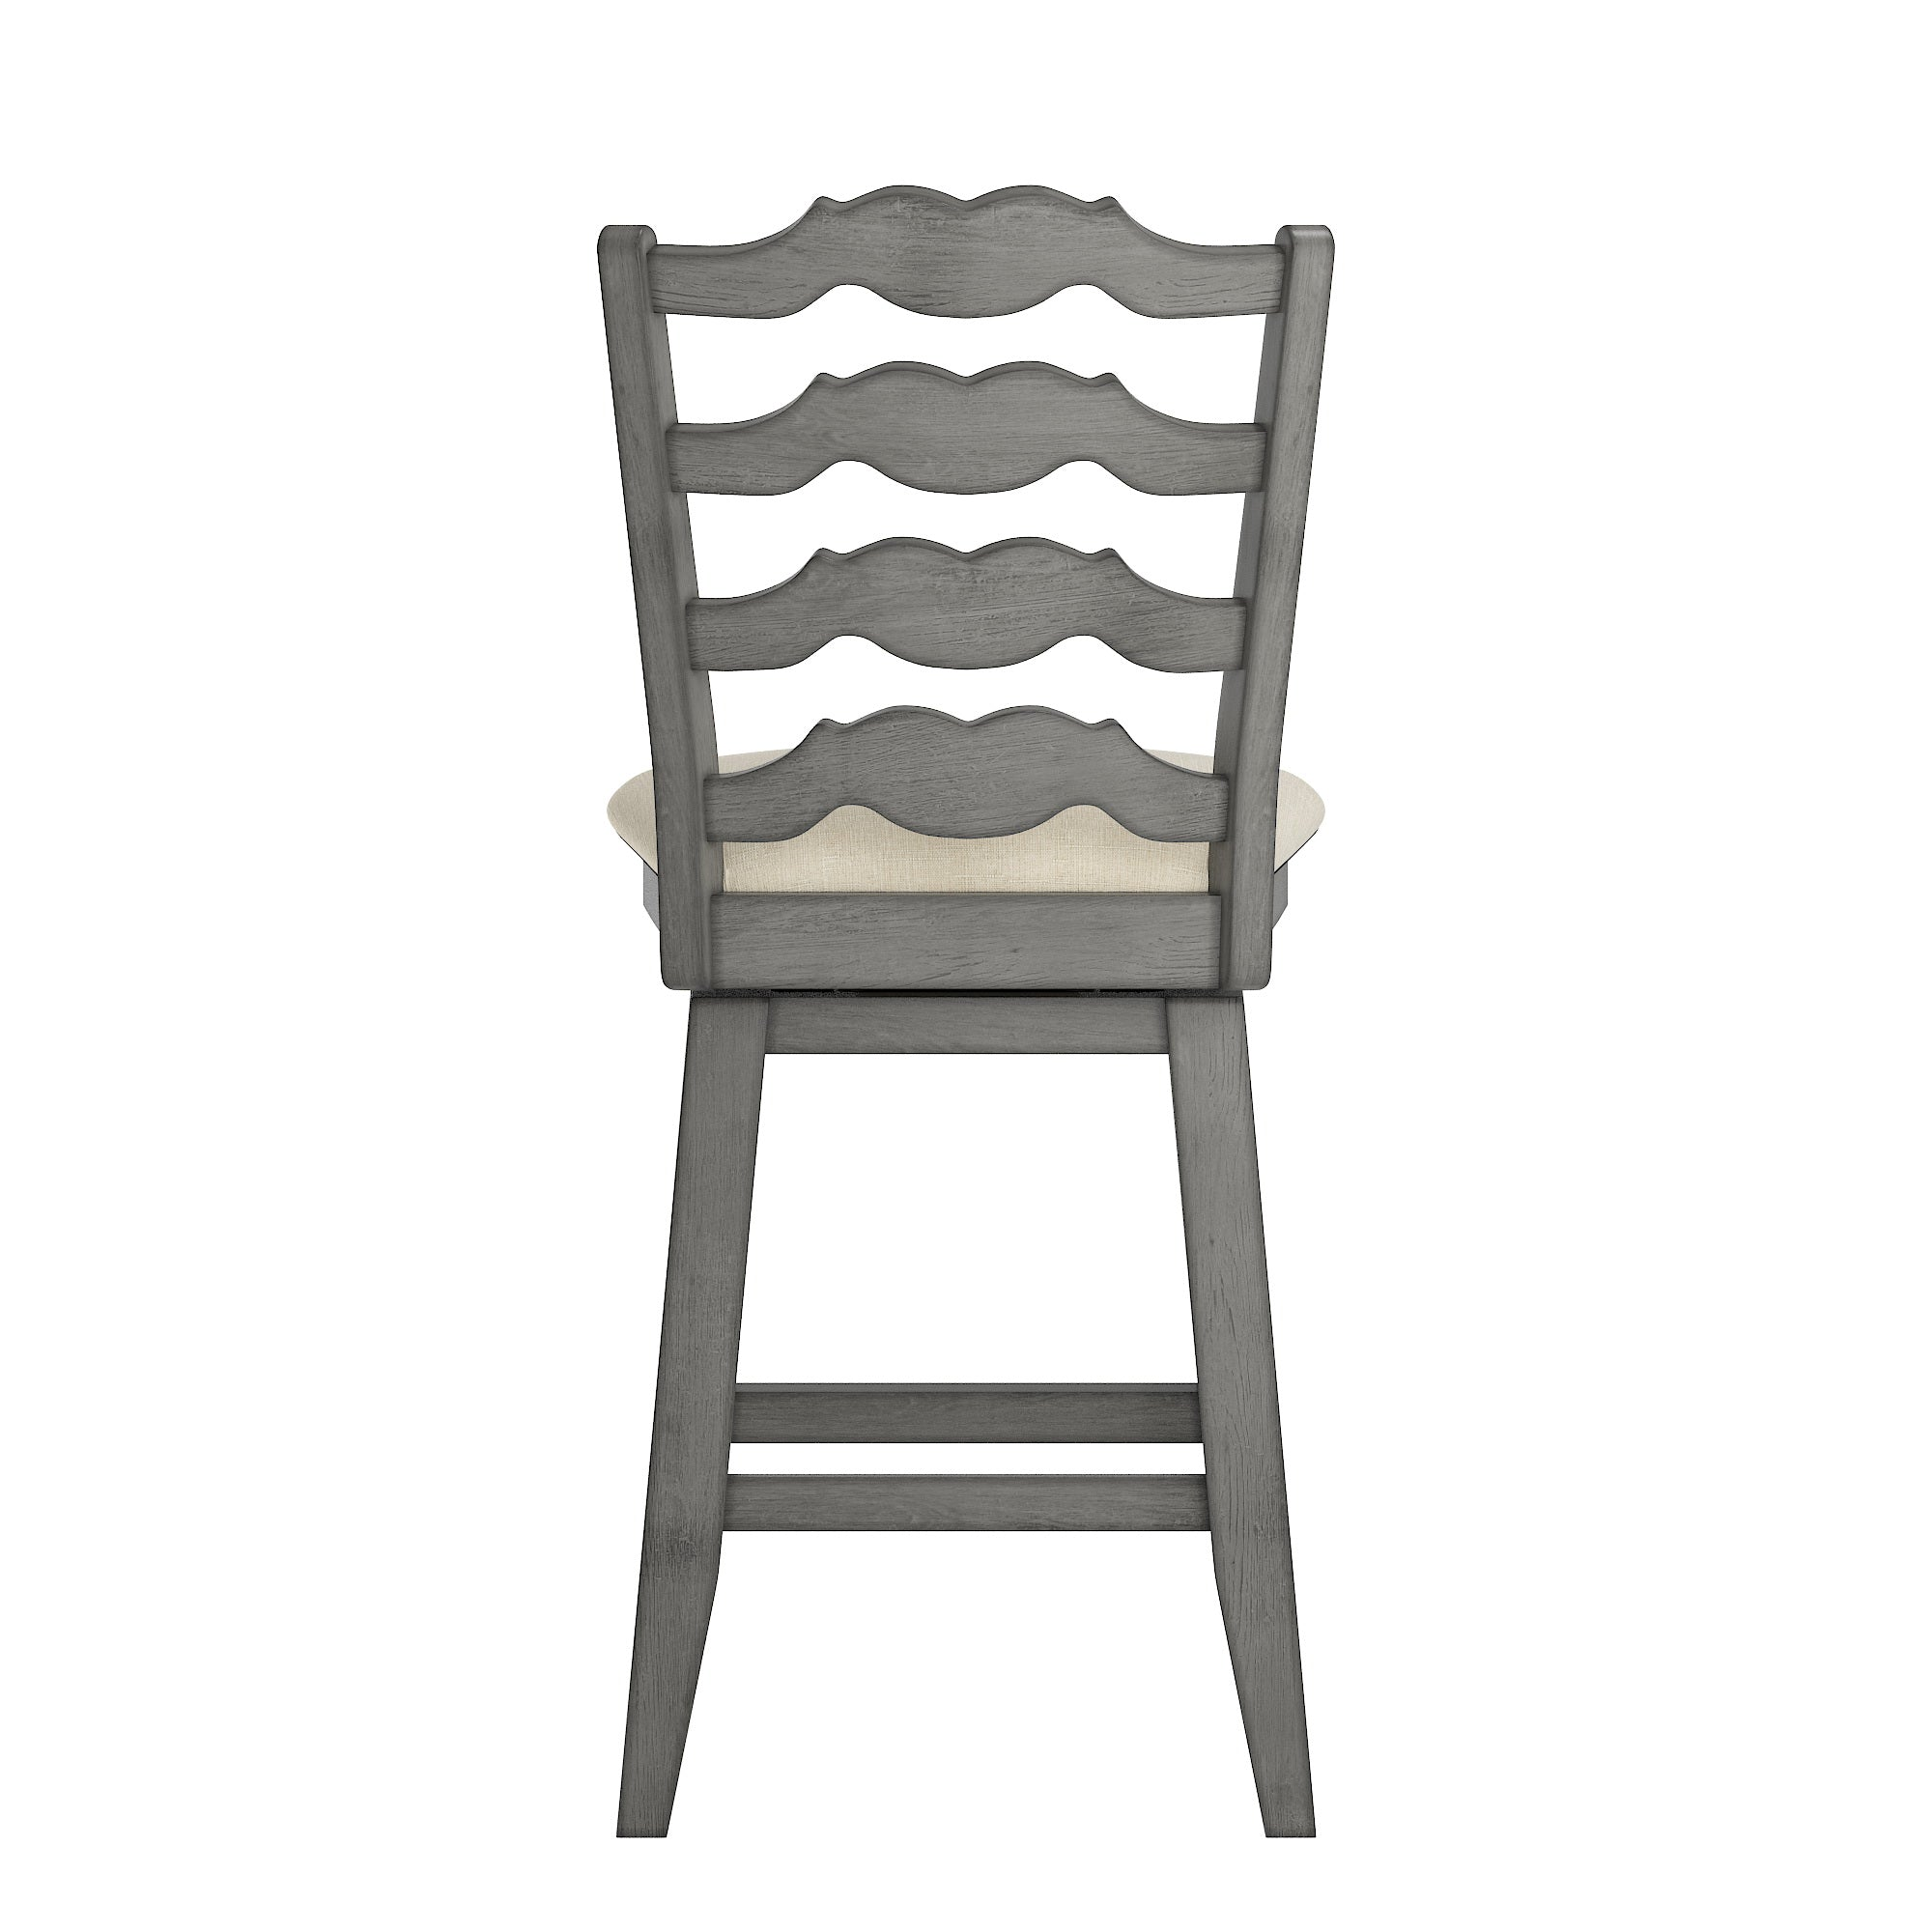 French Ladder Back Counter Height Swivel Chair - Antique Grey